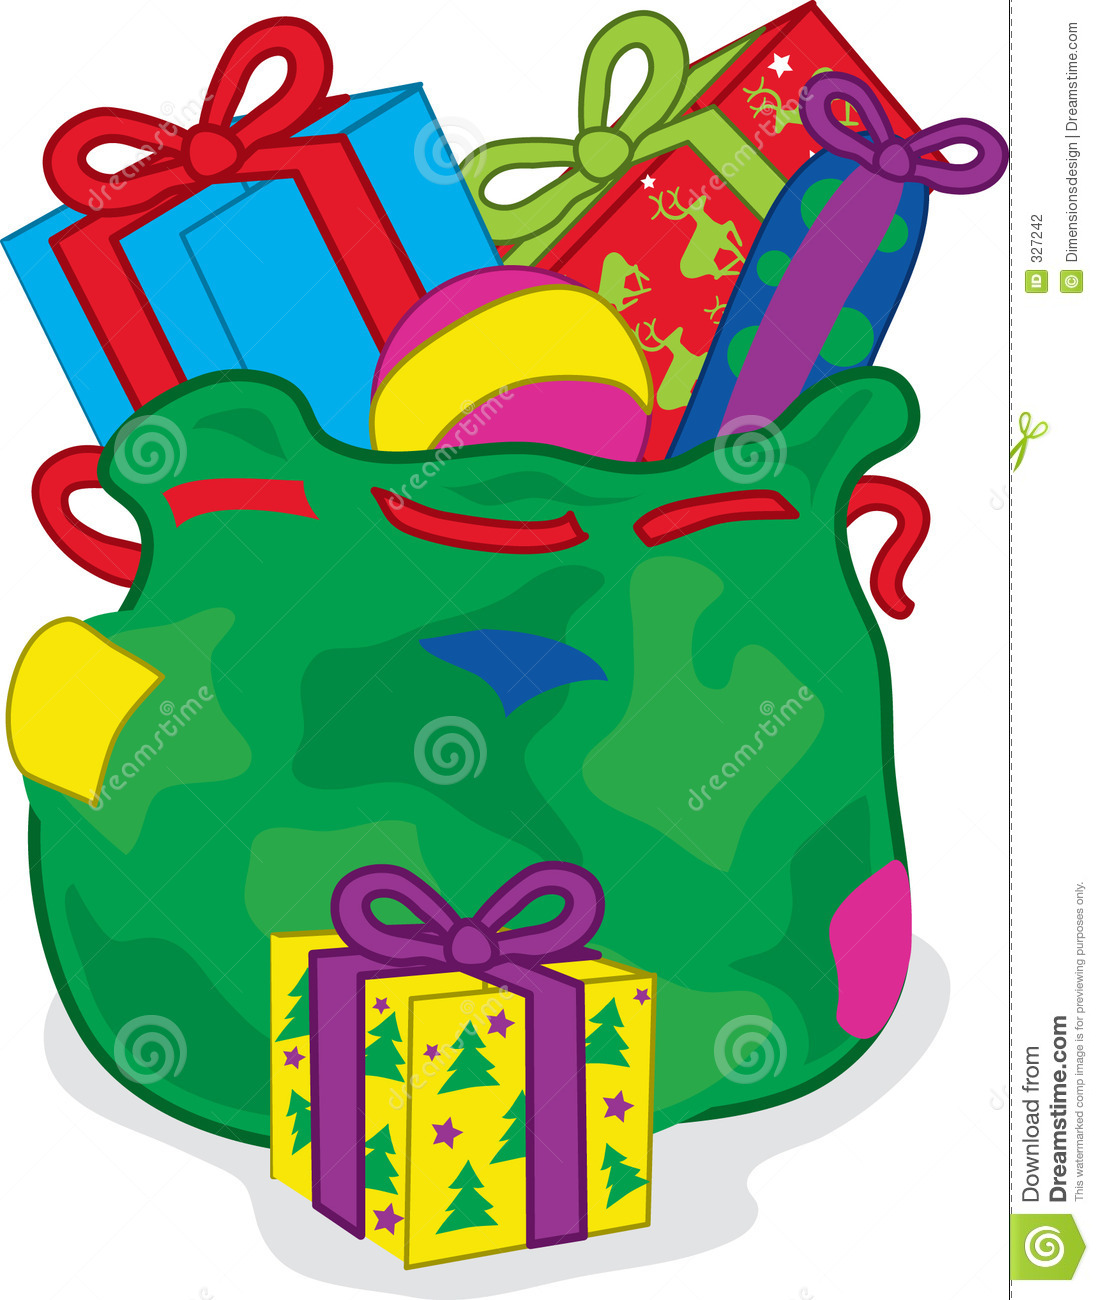 Full Color Vibrant Illustration Of A Christams Sack With Presents